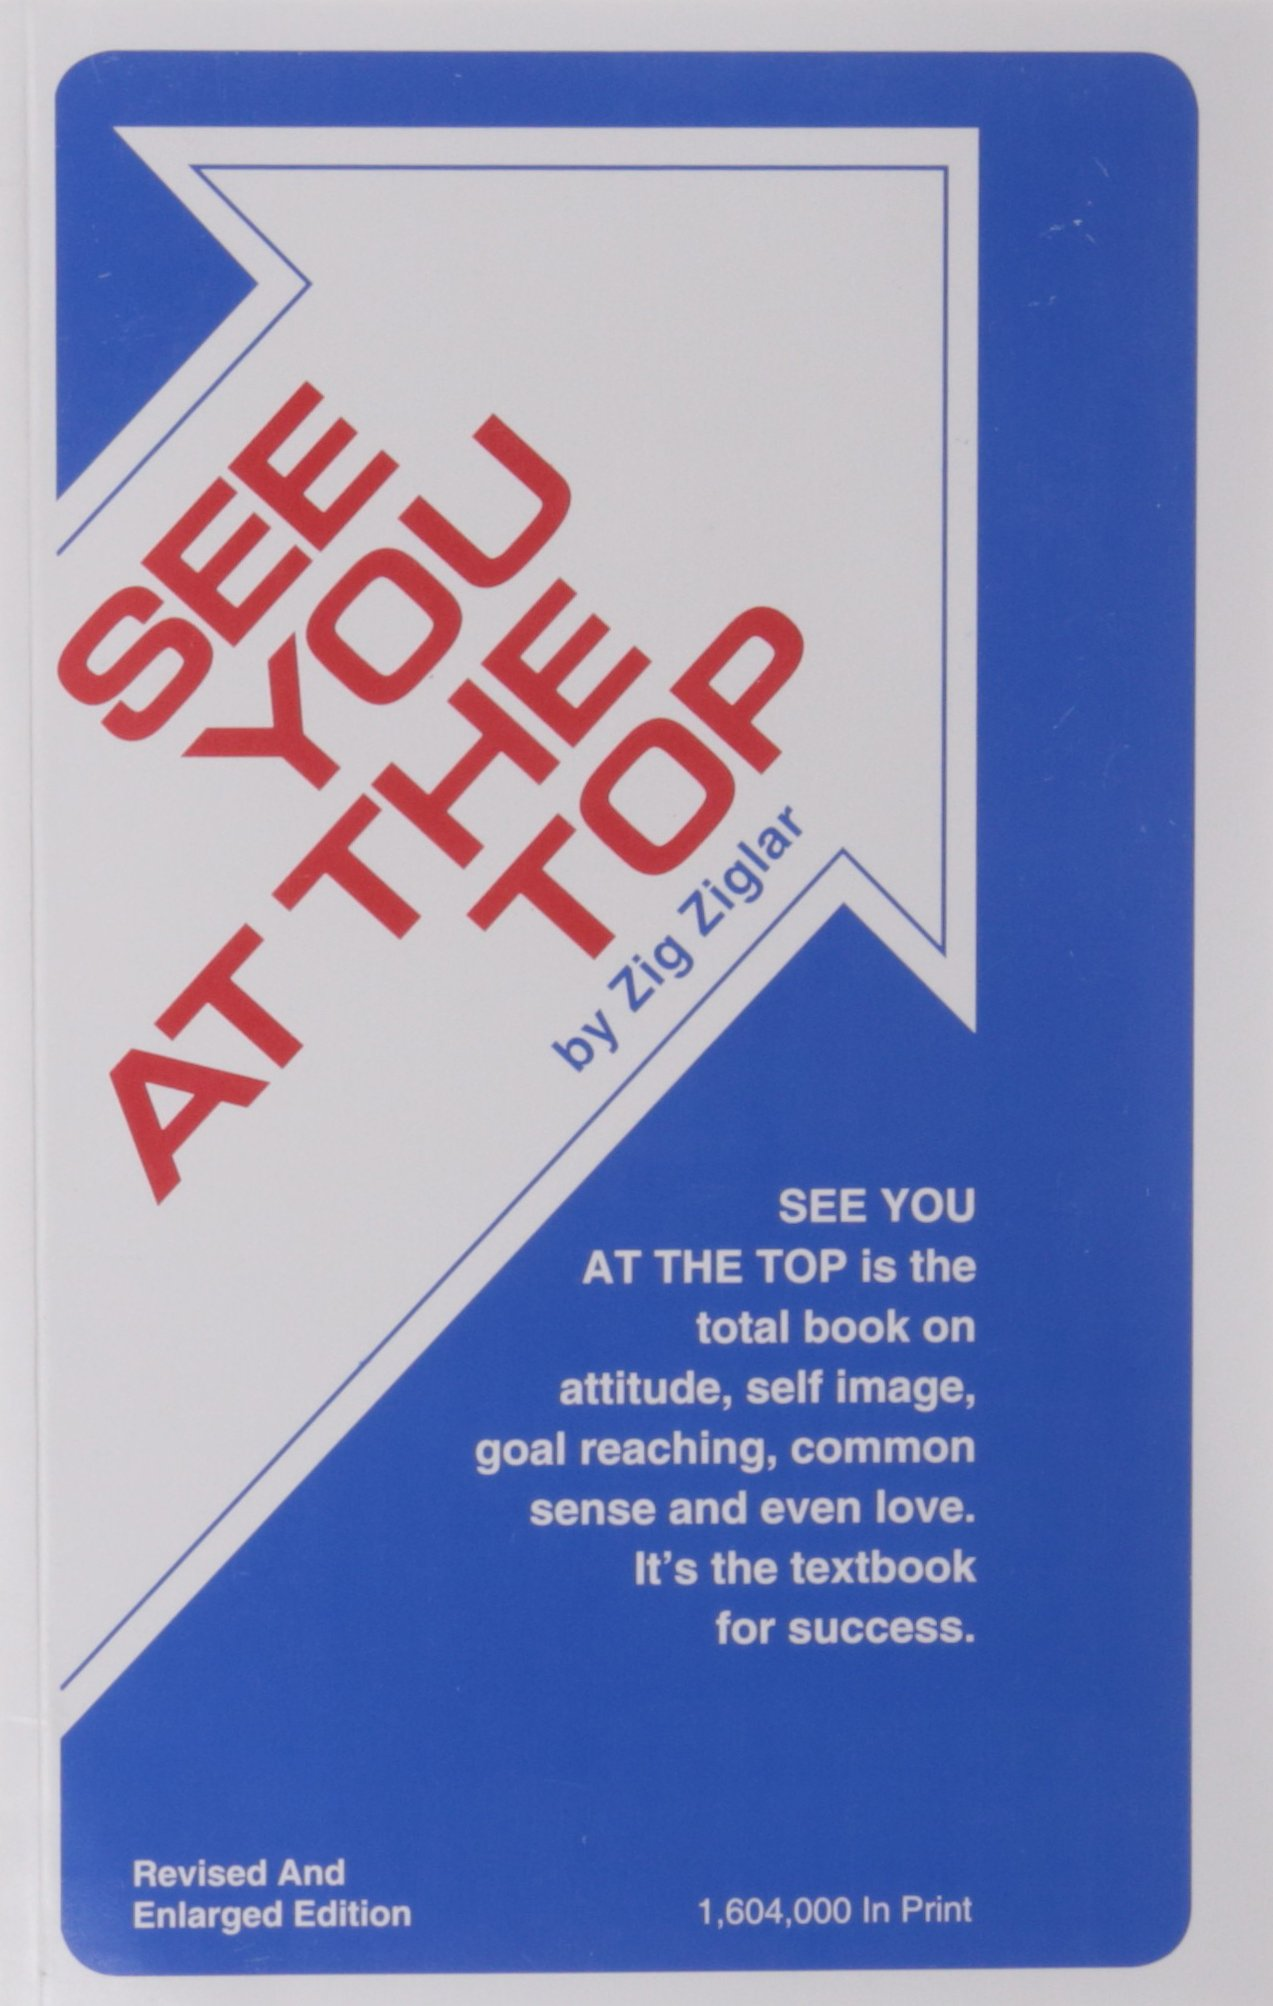 See You at the Top ISBN-13 9788178090412